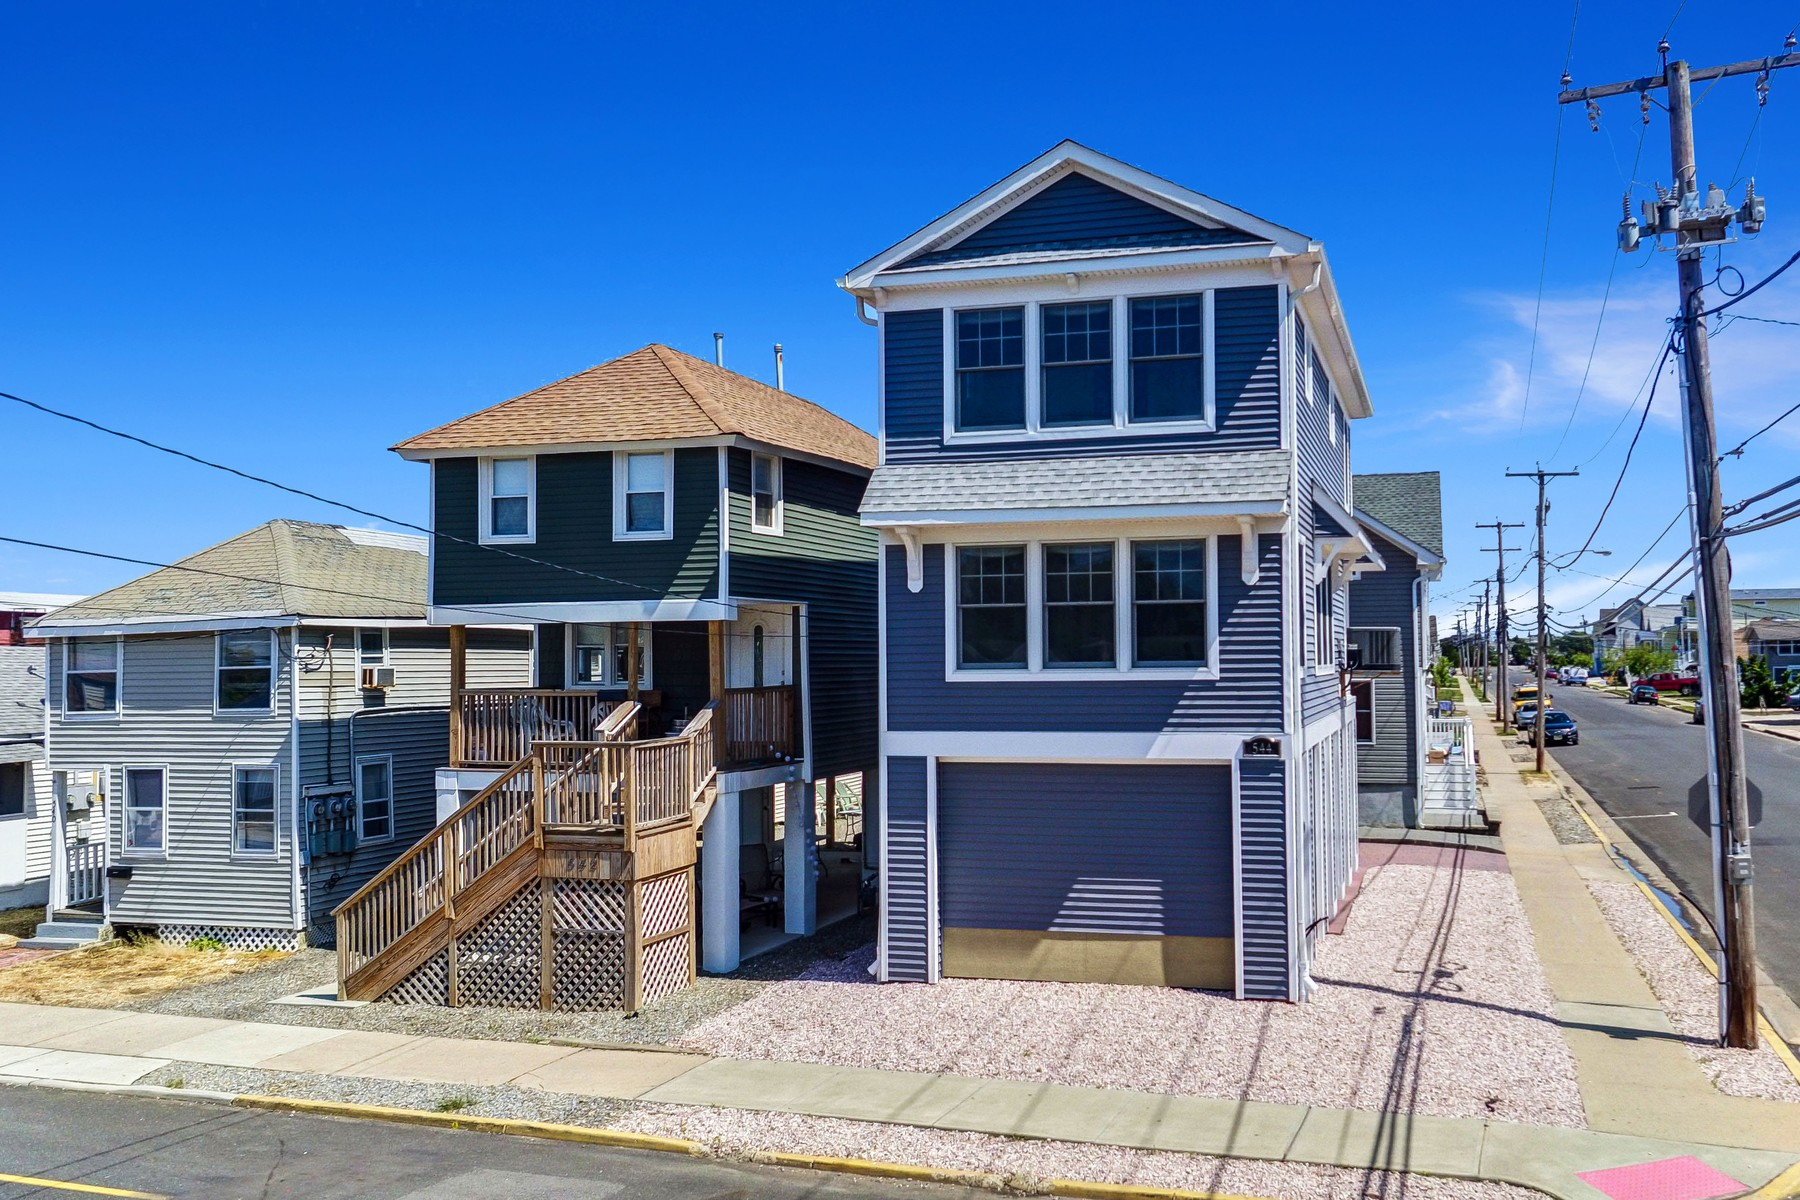 Single Family Home for Sale at Soho Of The Jersey Shore 544 Brielle Rd Manasquan, New Jersey, 08736 United States